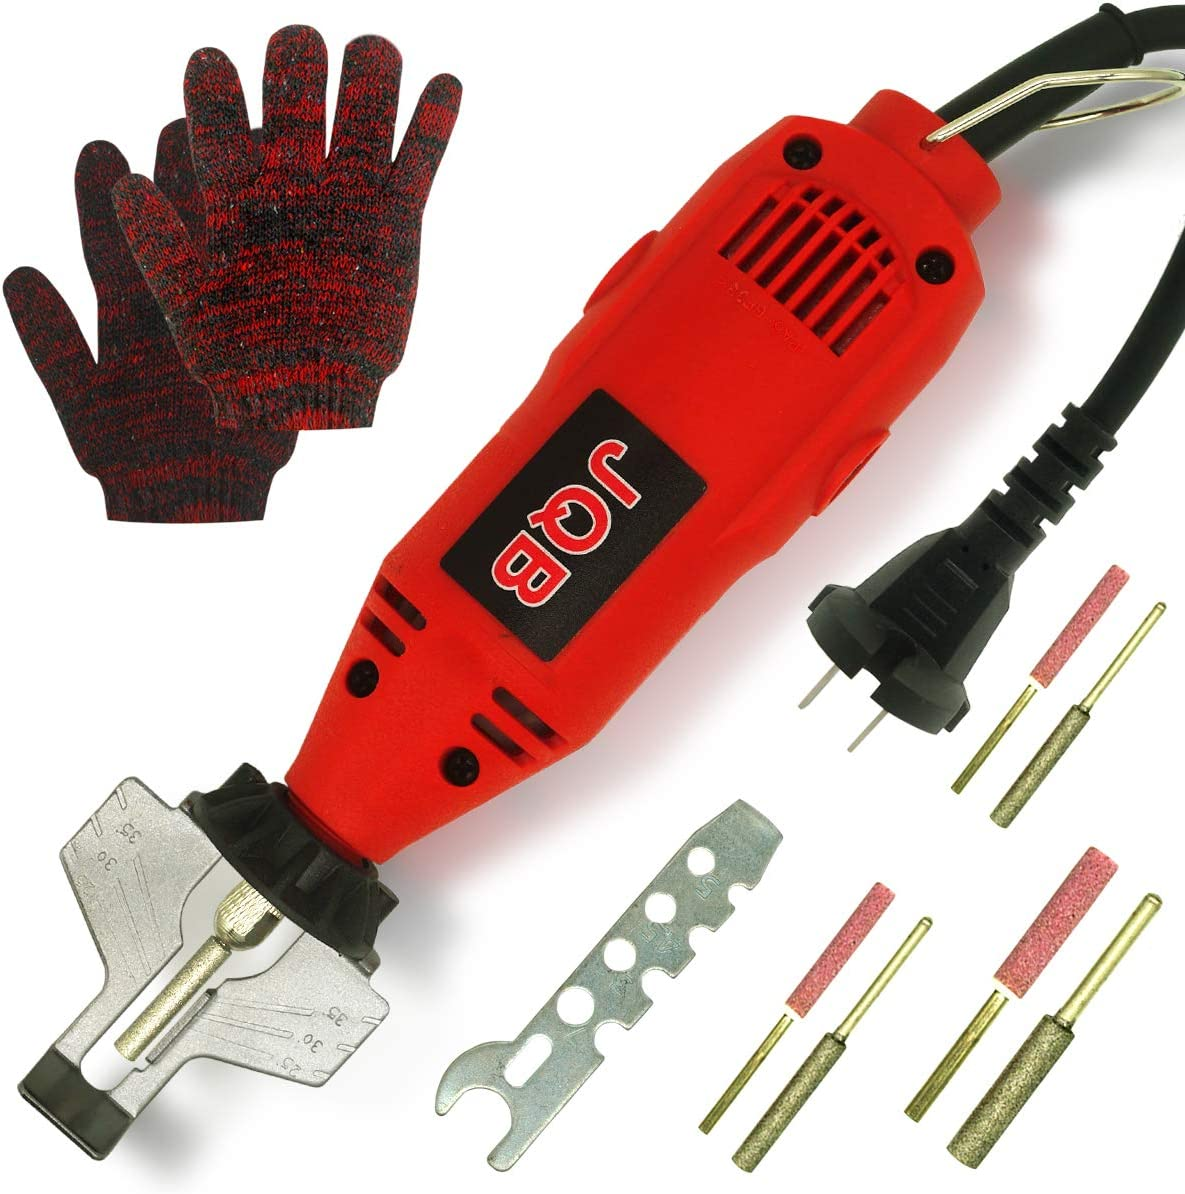 MaiDa Electric Chainsaw Sharpener Kit, 110 Volts Portable Handheld Universal Chain Teeth Sharpening Tool for Chainsaws, Extra 3 Diamond Bits